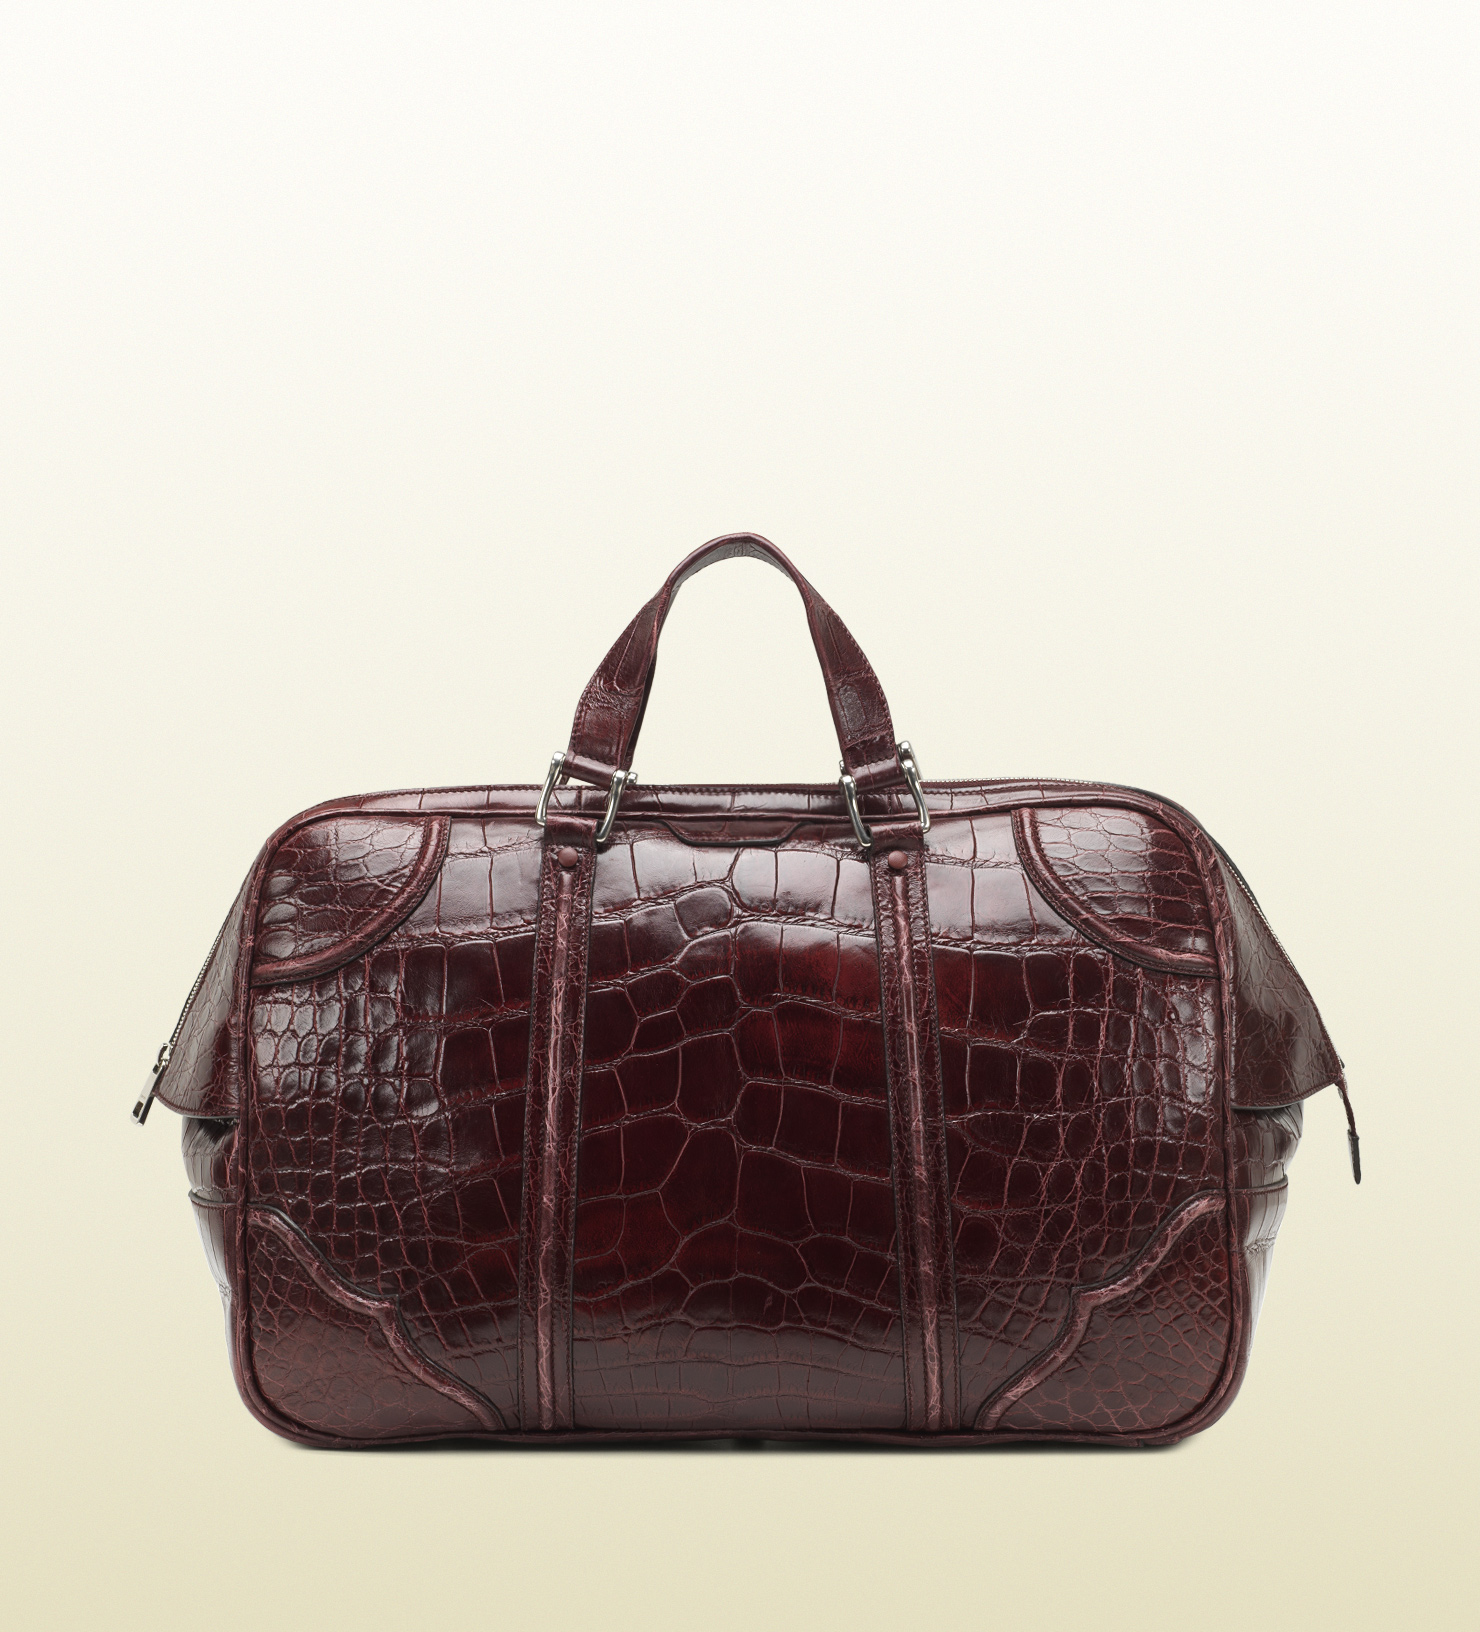 8aa9b01d807fac Gucci Duffle Bag Song | Stanford Center for Opportunity Policy in ...